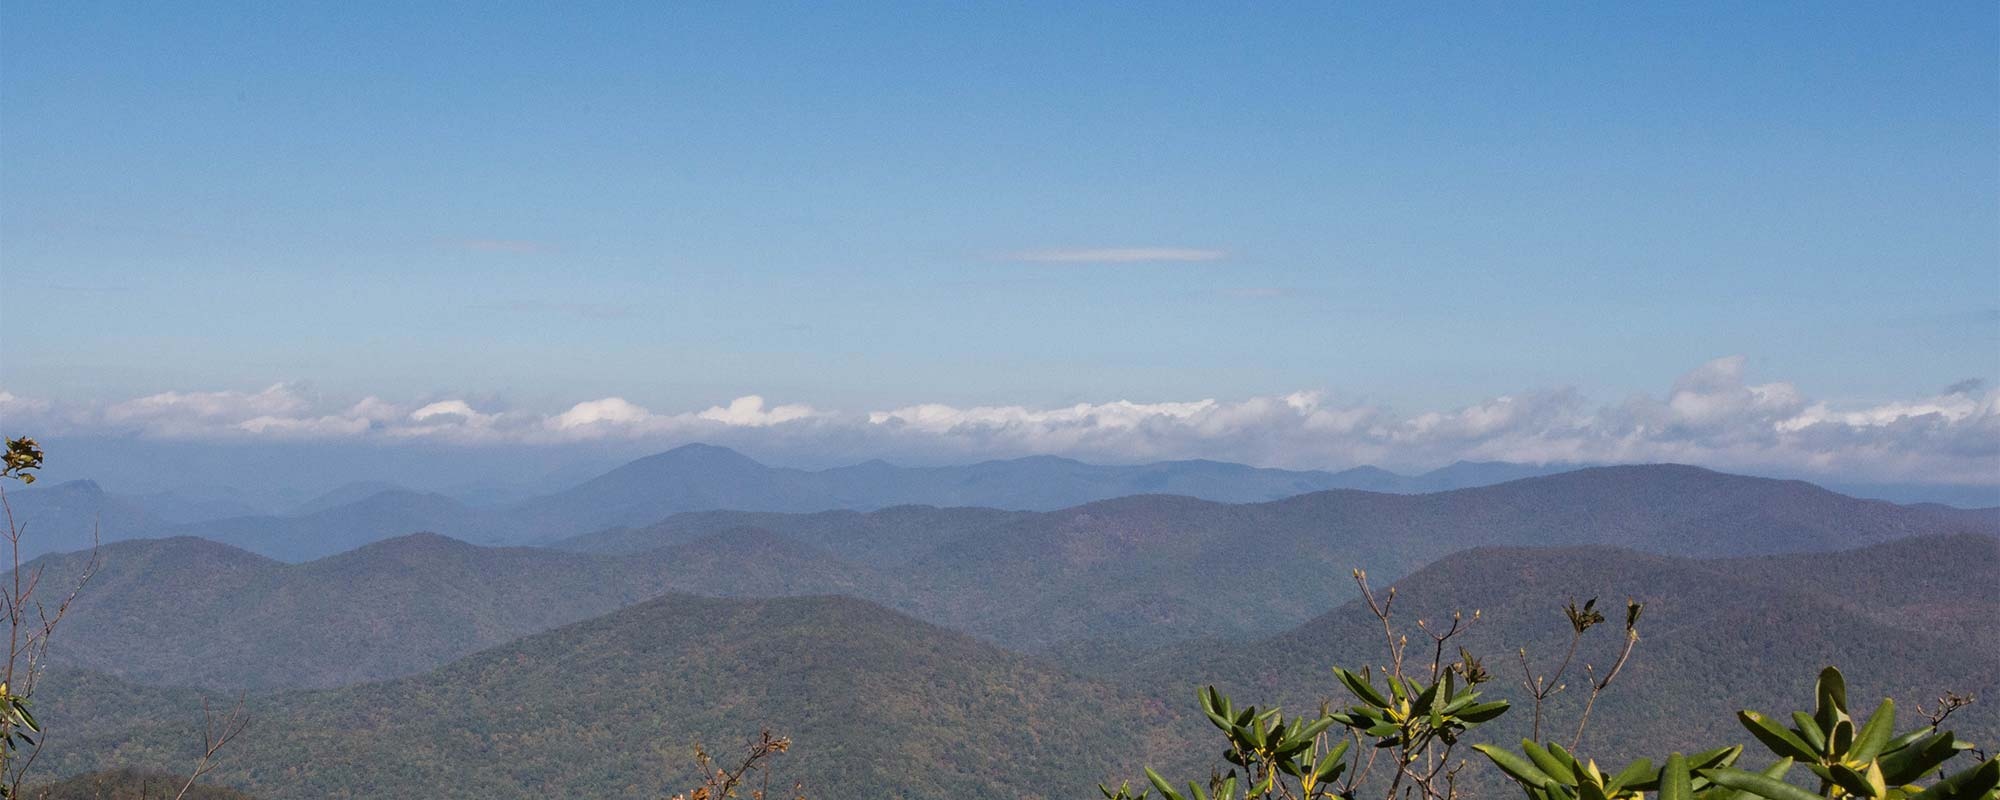 Tray Mountain via Unicoi Gap